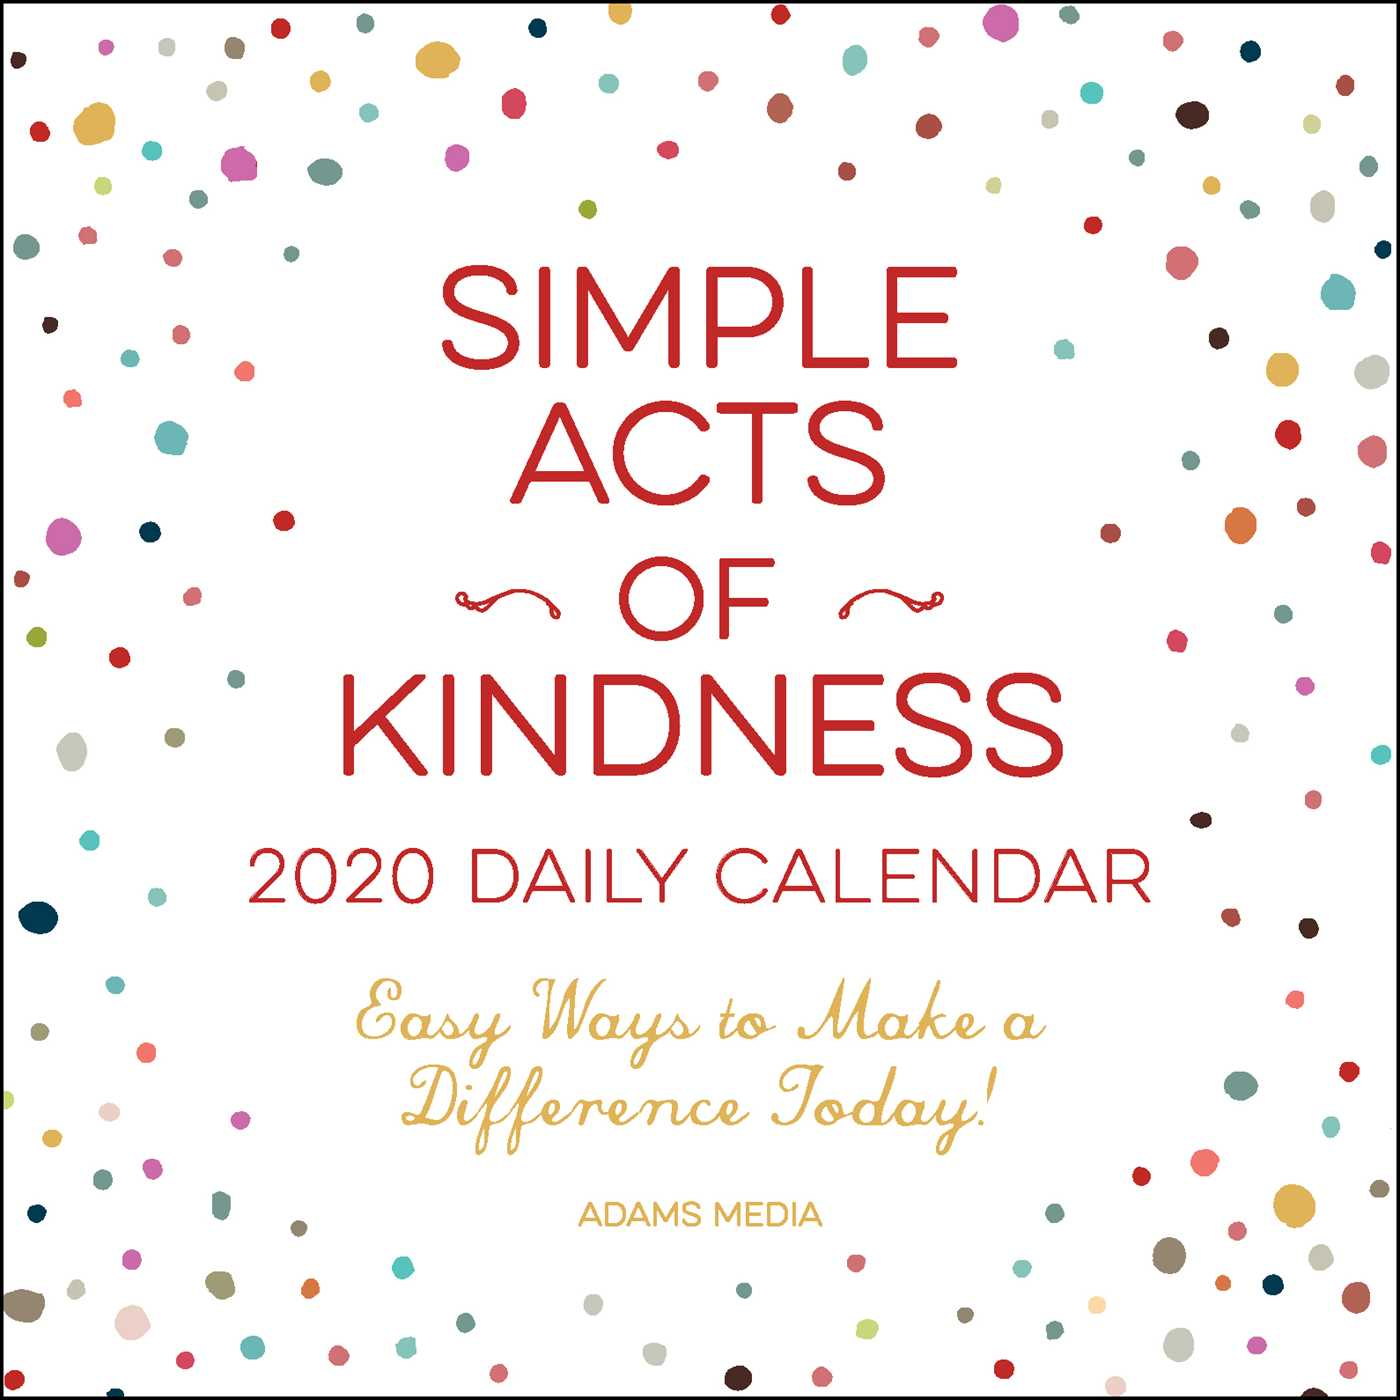 Acts Of Kindness Calendar December 2020 Simple Acts of Kindness 2020 Daily Calendar   Book Summary & Video